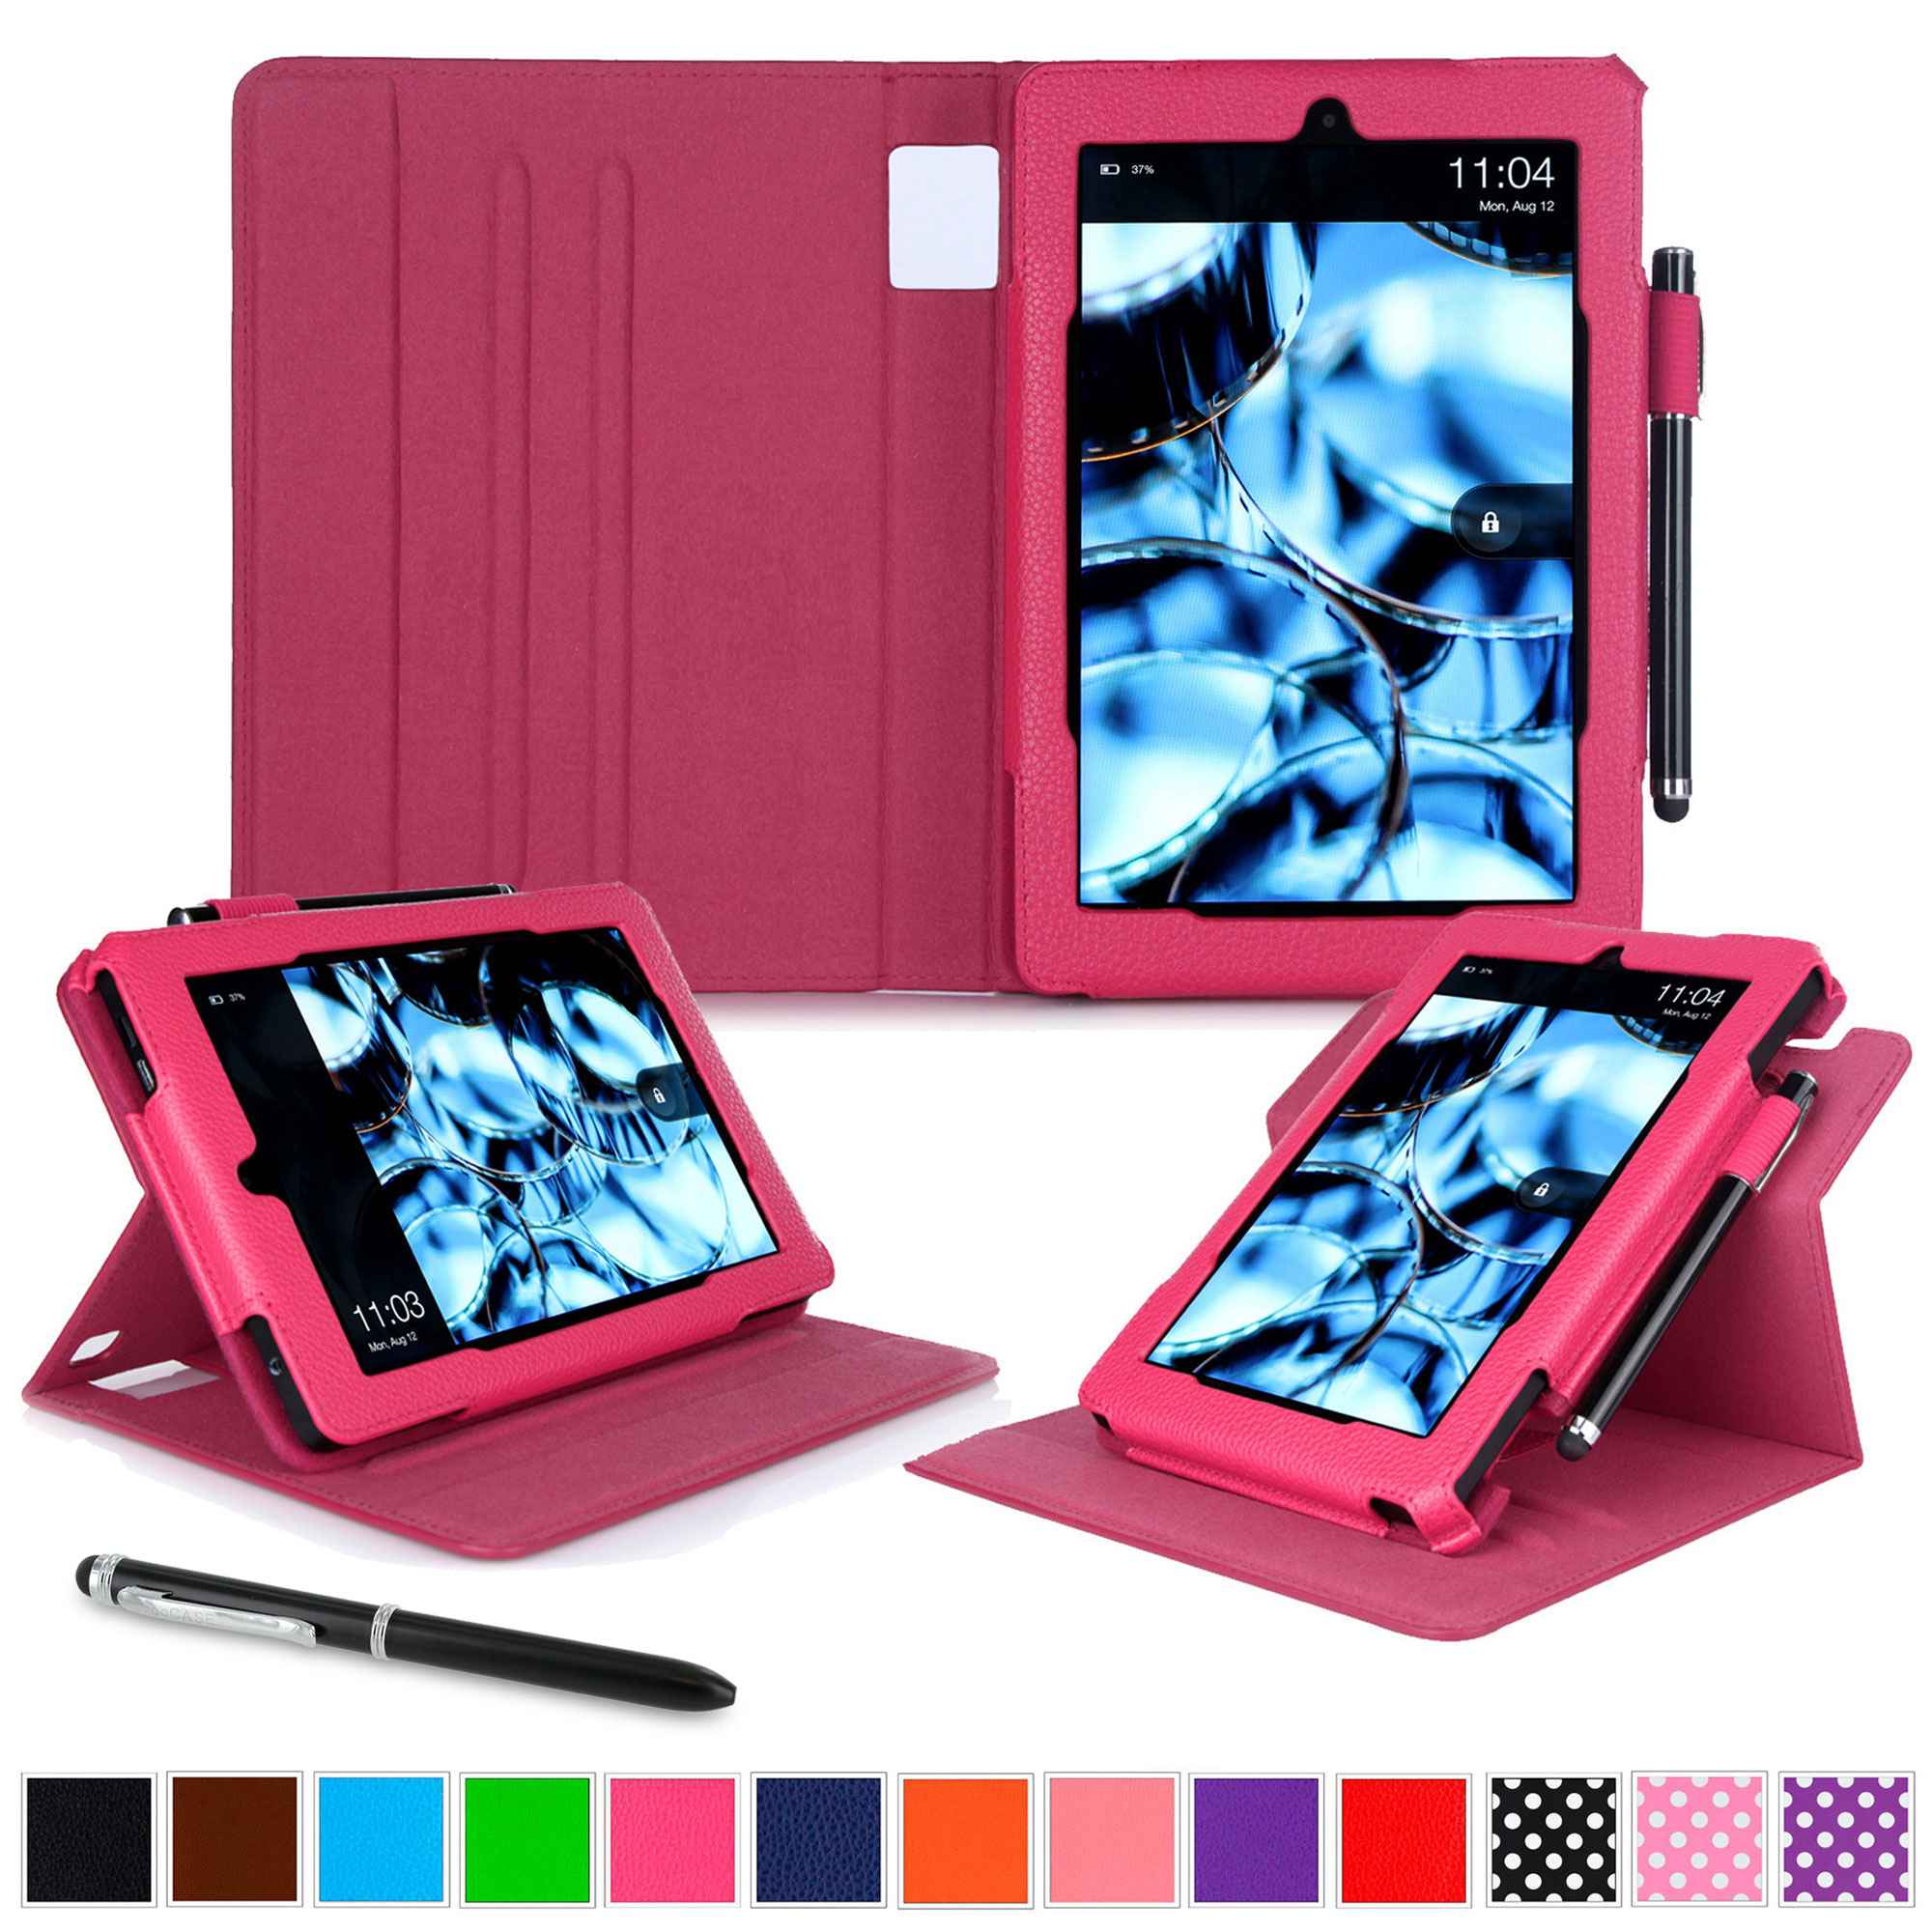 Kindle Fire HD 7 Tablet (2014) Case, roocase 2014 Kindle Fire HD 7 Dual View Folio Case with Sleep / Wake Smart Cover Stand for 2014 Model Fire HD 7 Tablet (4th Generation), Magenta